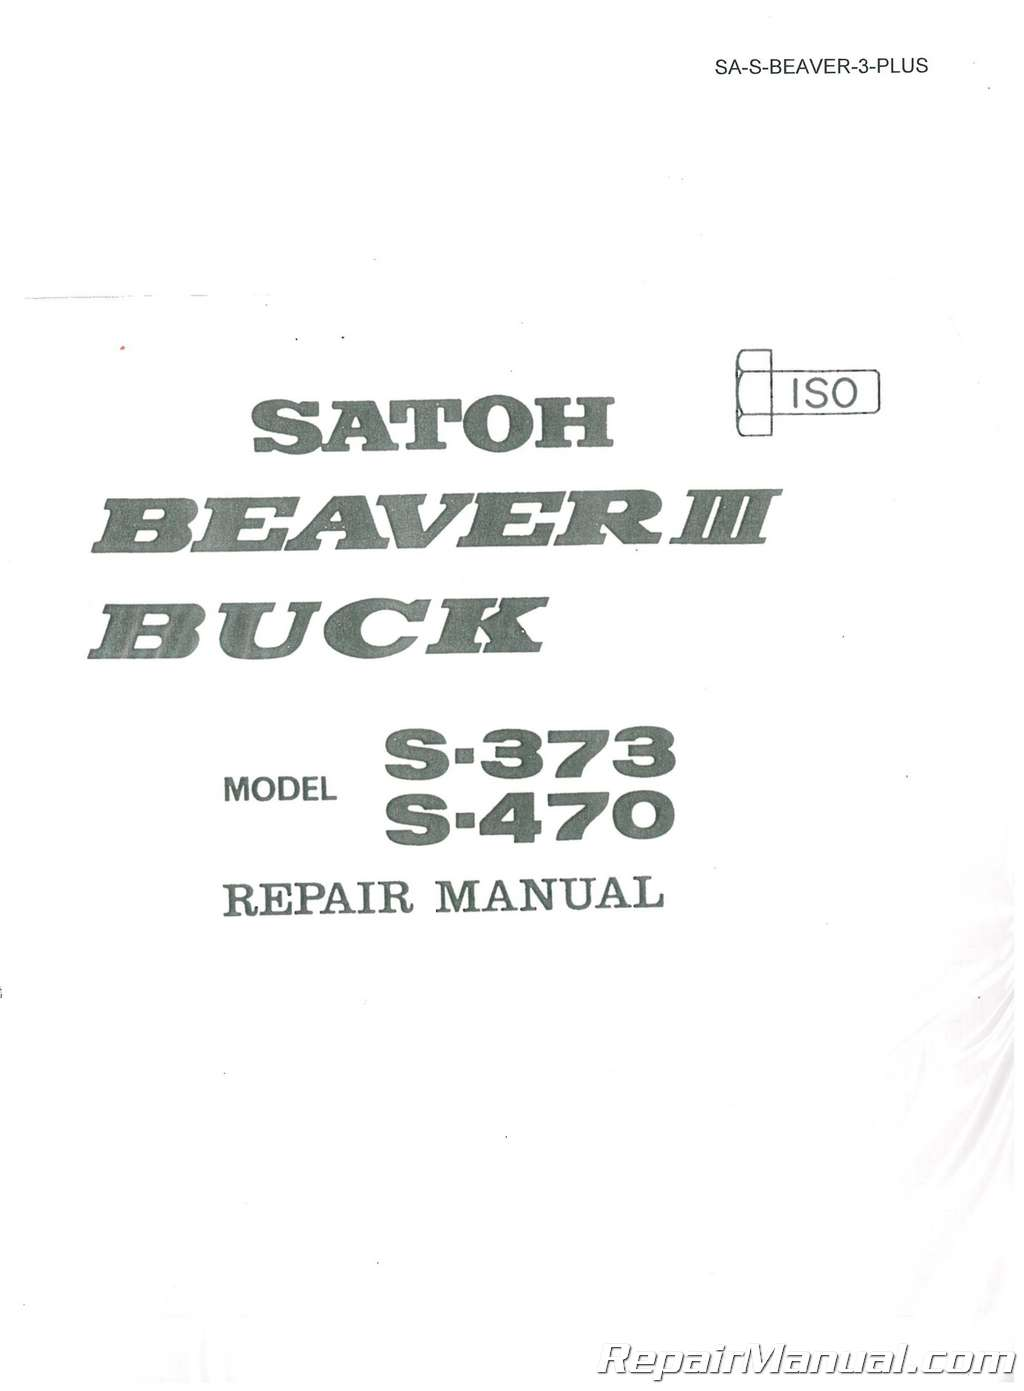 Satoh Beaver Diesel III S373 Buck S470 Tractor Service Manual_001 satoh tractor 4 cylinder engine diagram wiring library